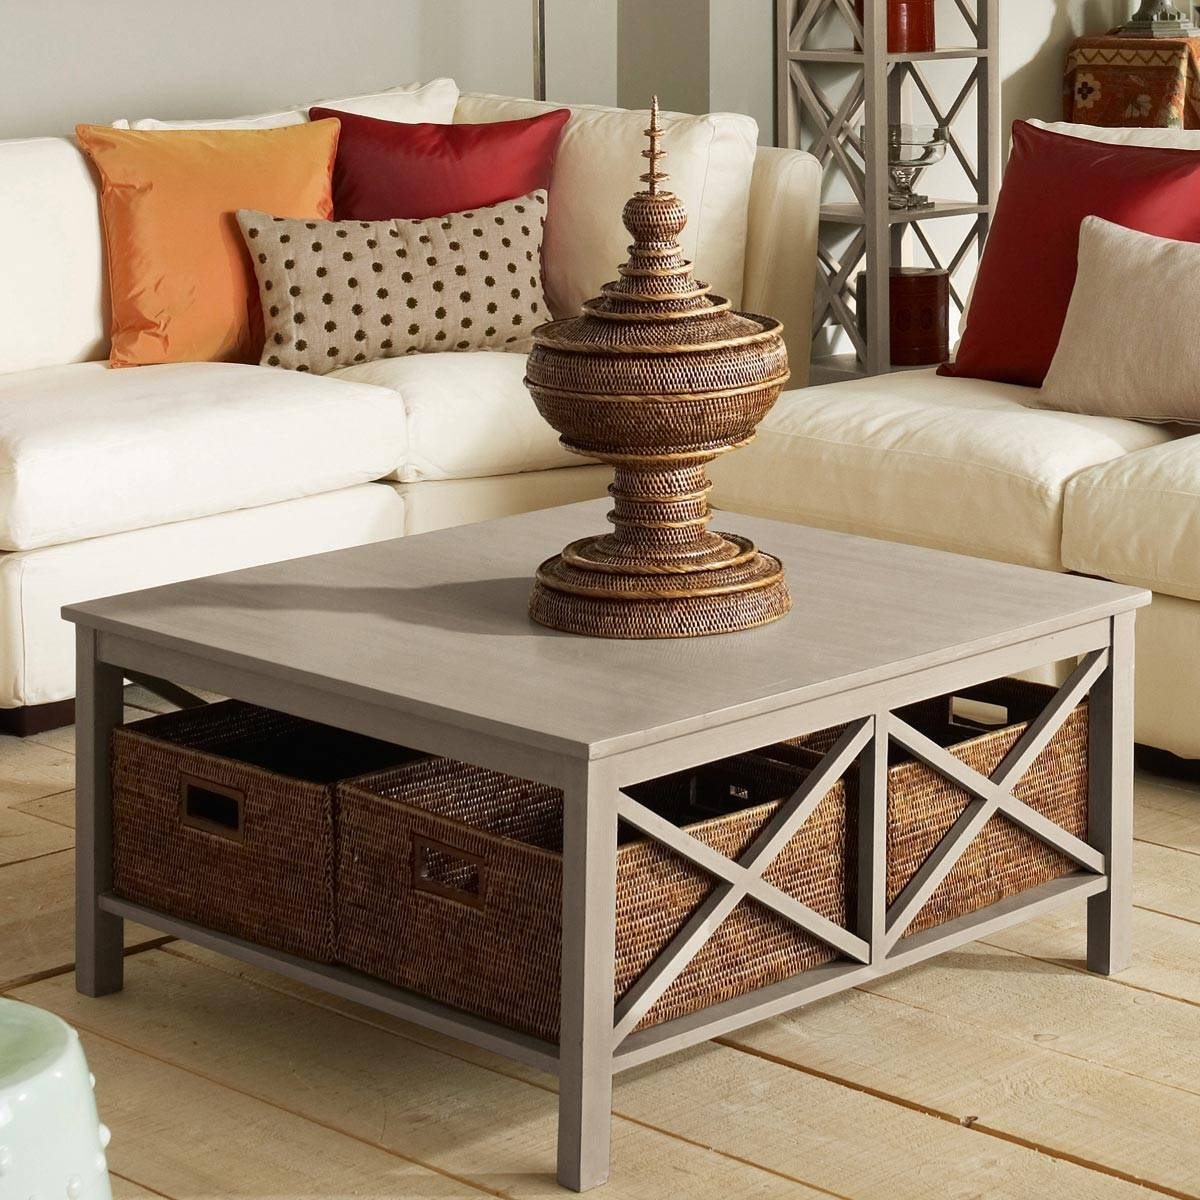 Square Coffee Table With Storage | Coffee Tables intended for Square Storage Coffee Table (Image 12 of 15)